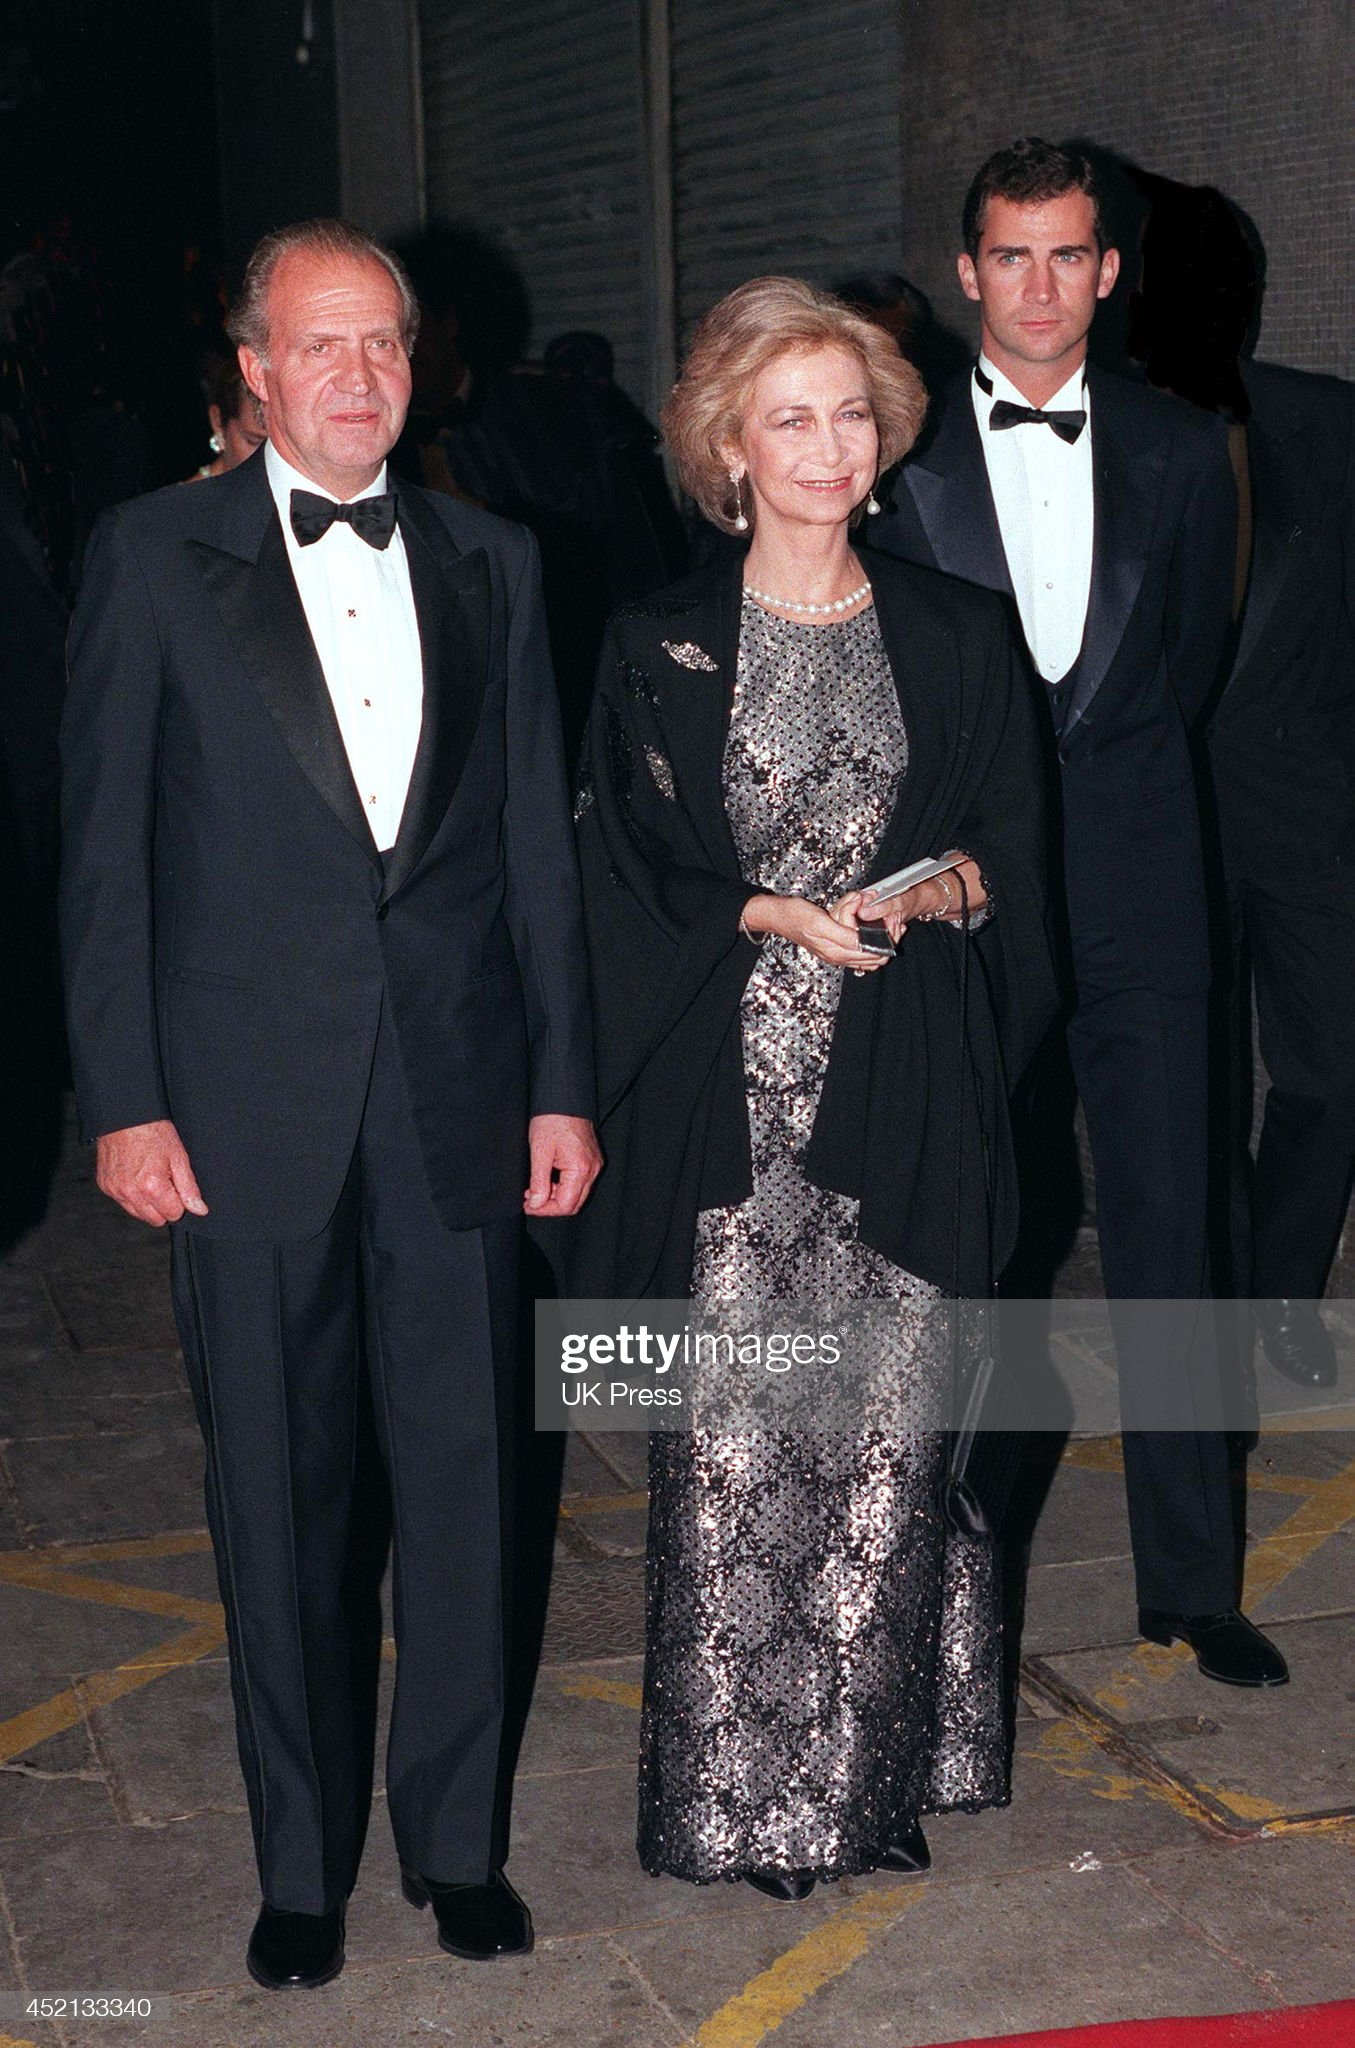 Queen Elizabeth II, and Prince Philip, Duke of Edinburgh, Golden Wedding Anniversary : News Photo